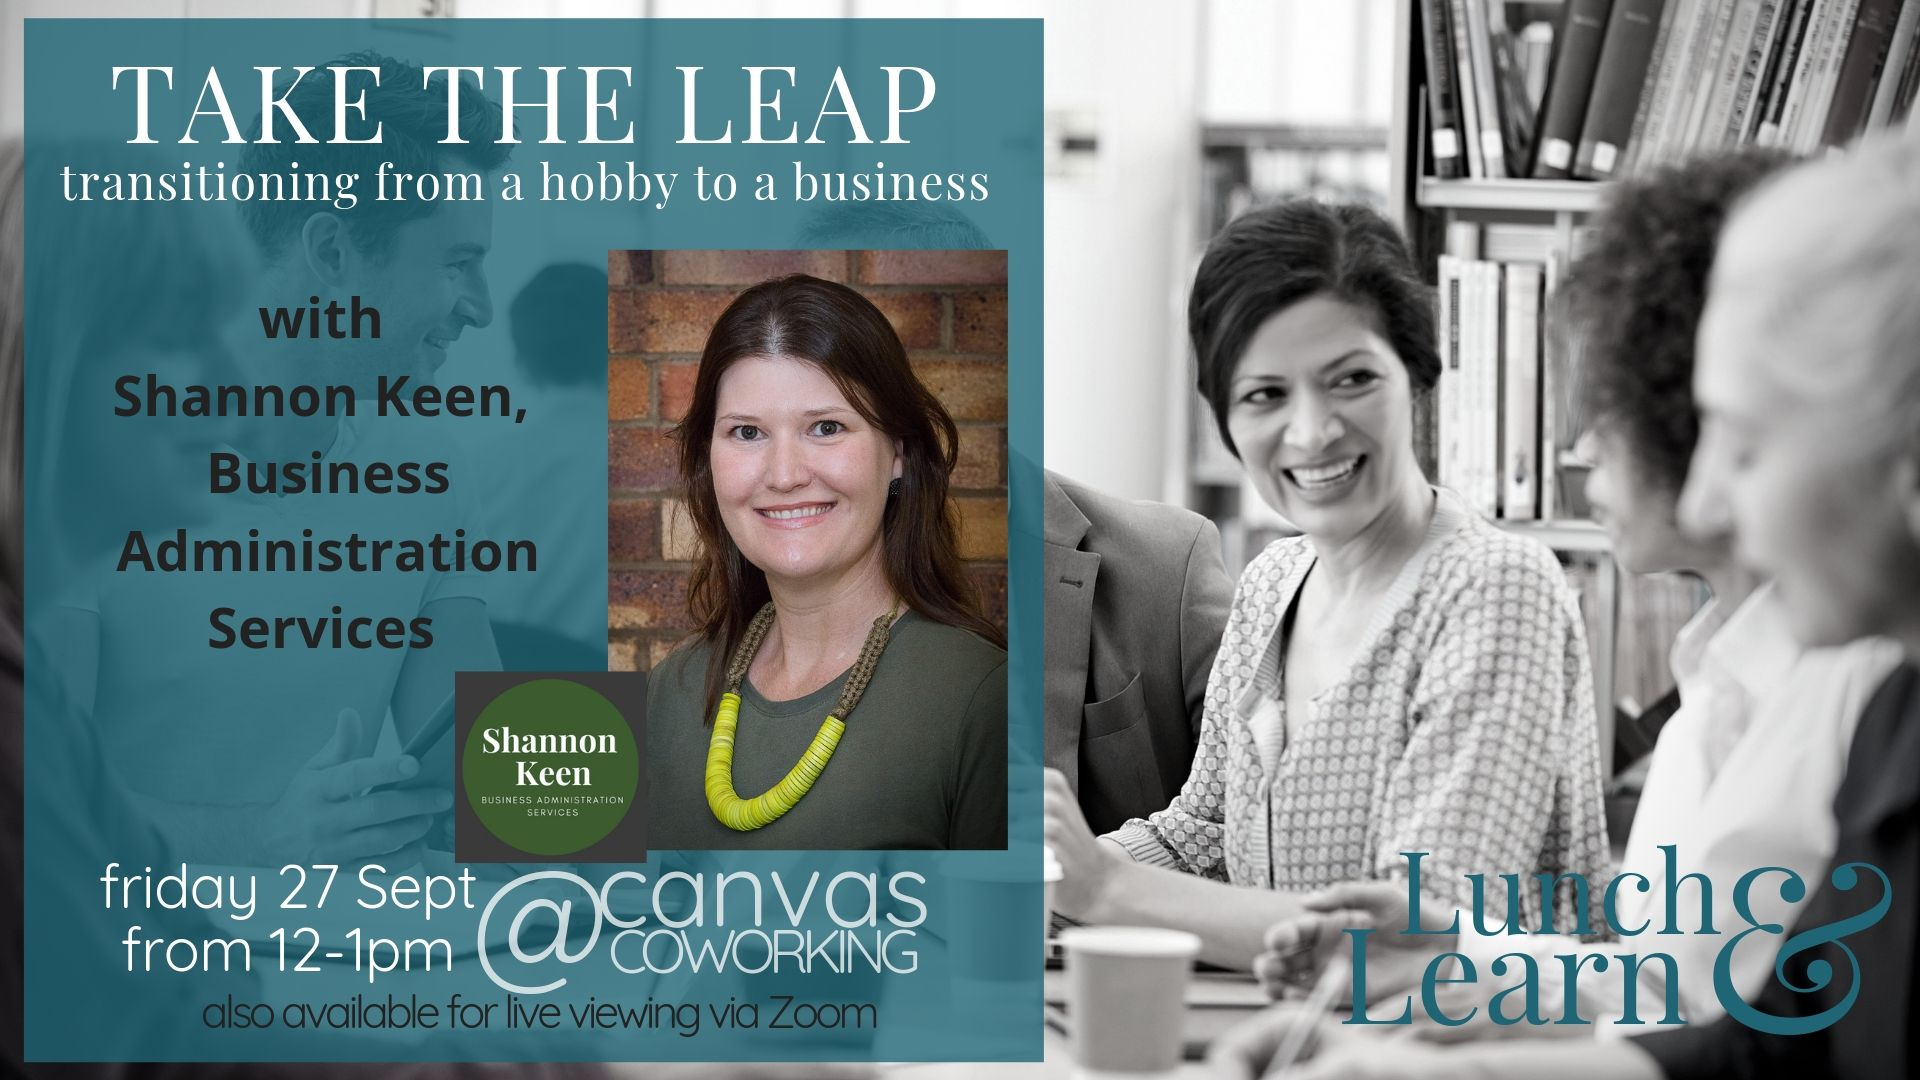 Take the Leap and turn your hobby into a business with Shannon Keen from Business Administration Services Friday 27 September from 12pm to 1pm at Canvas Coworking Toowoomba